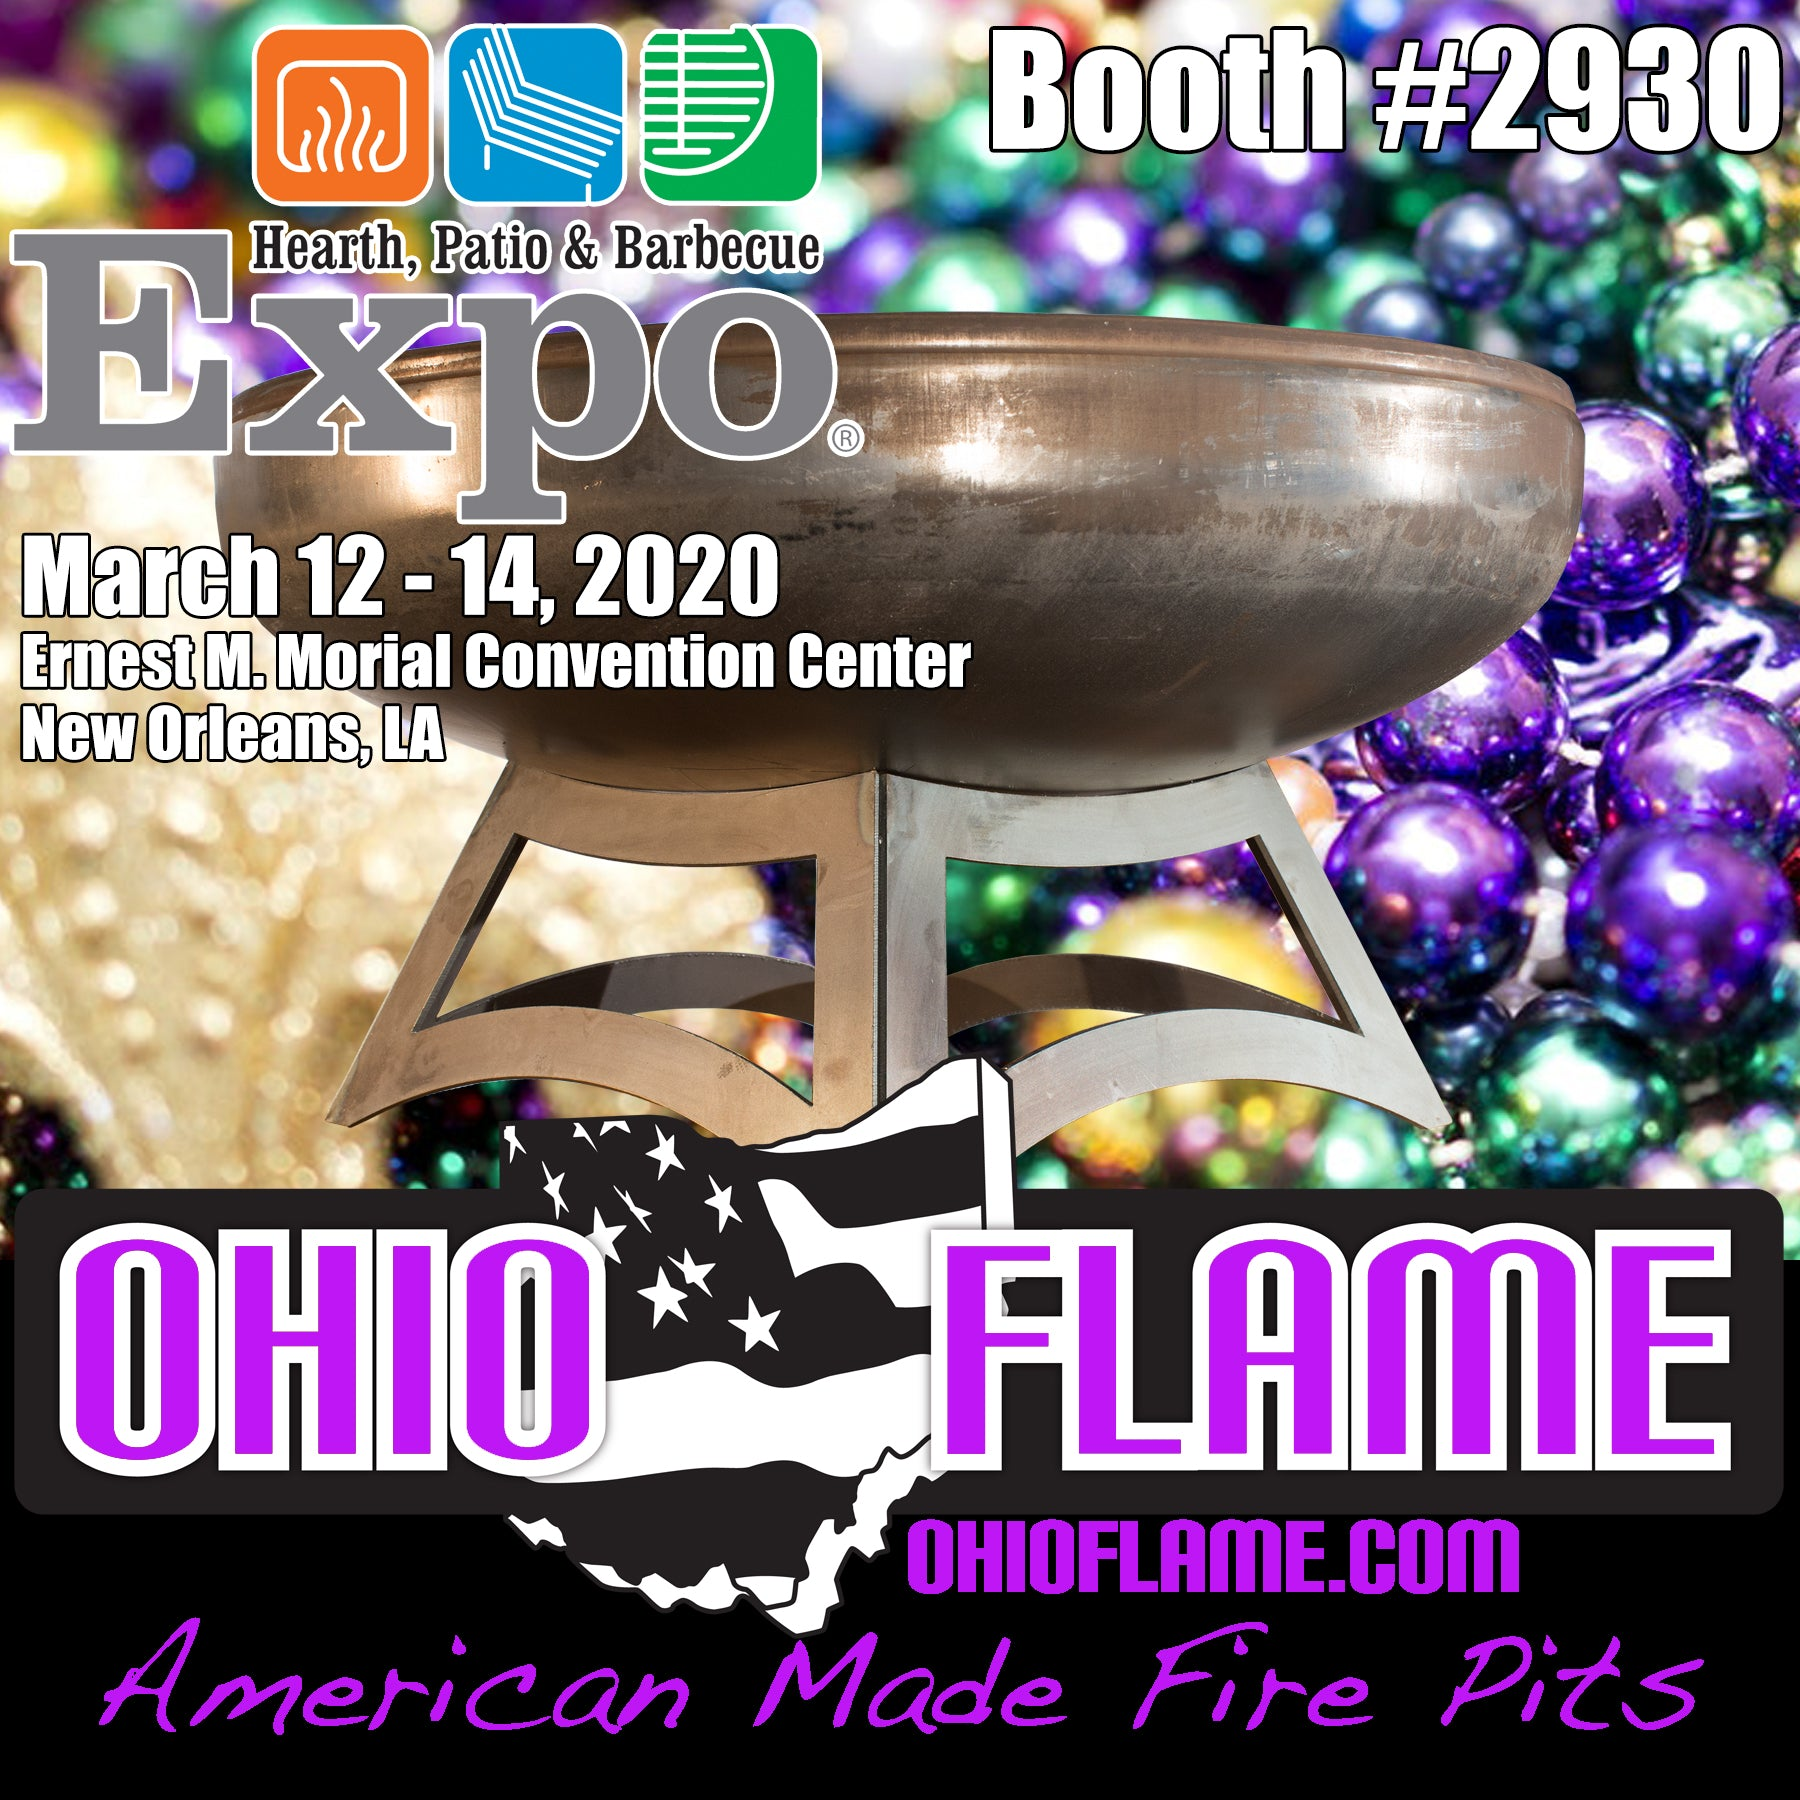 Ohio Flame Heads Back to New Orleans!